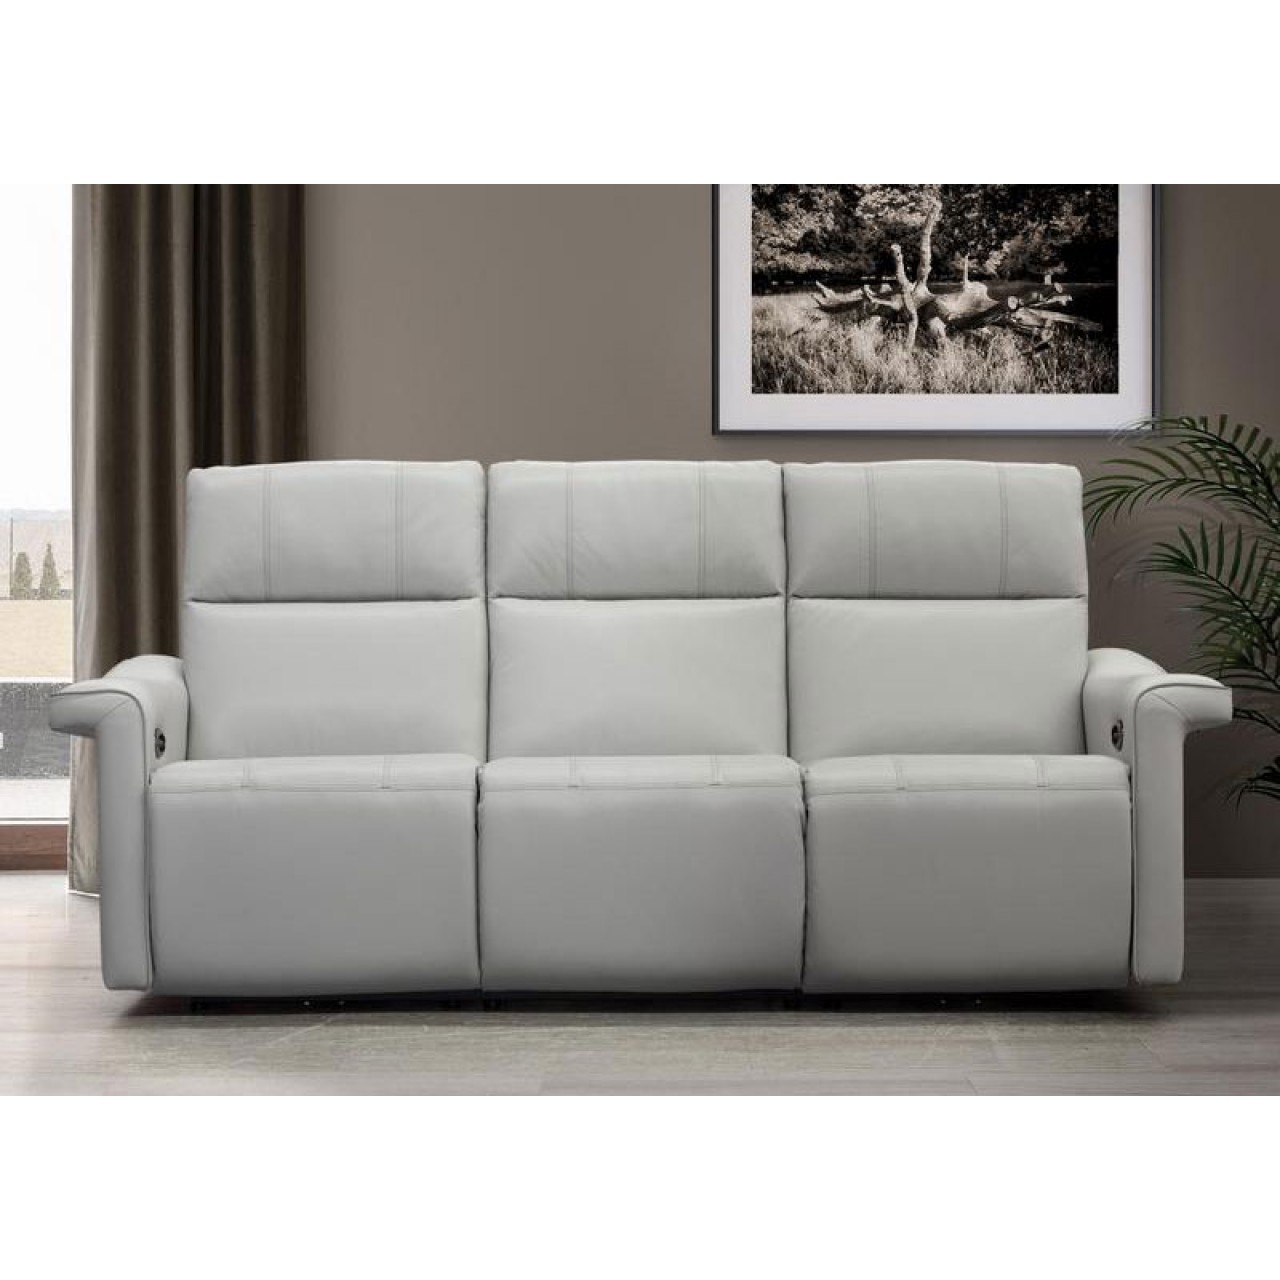 Economax Sectional Sofas In Latest Elran Sofa (View 6 of 15)